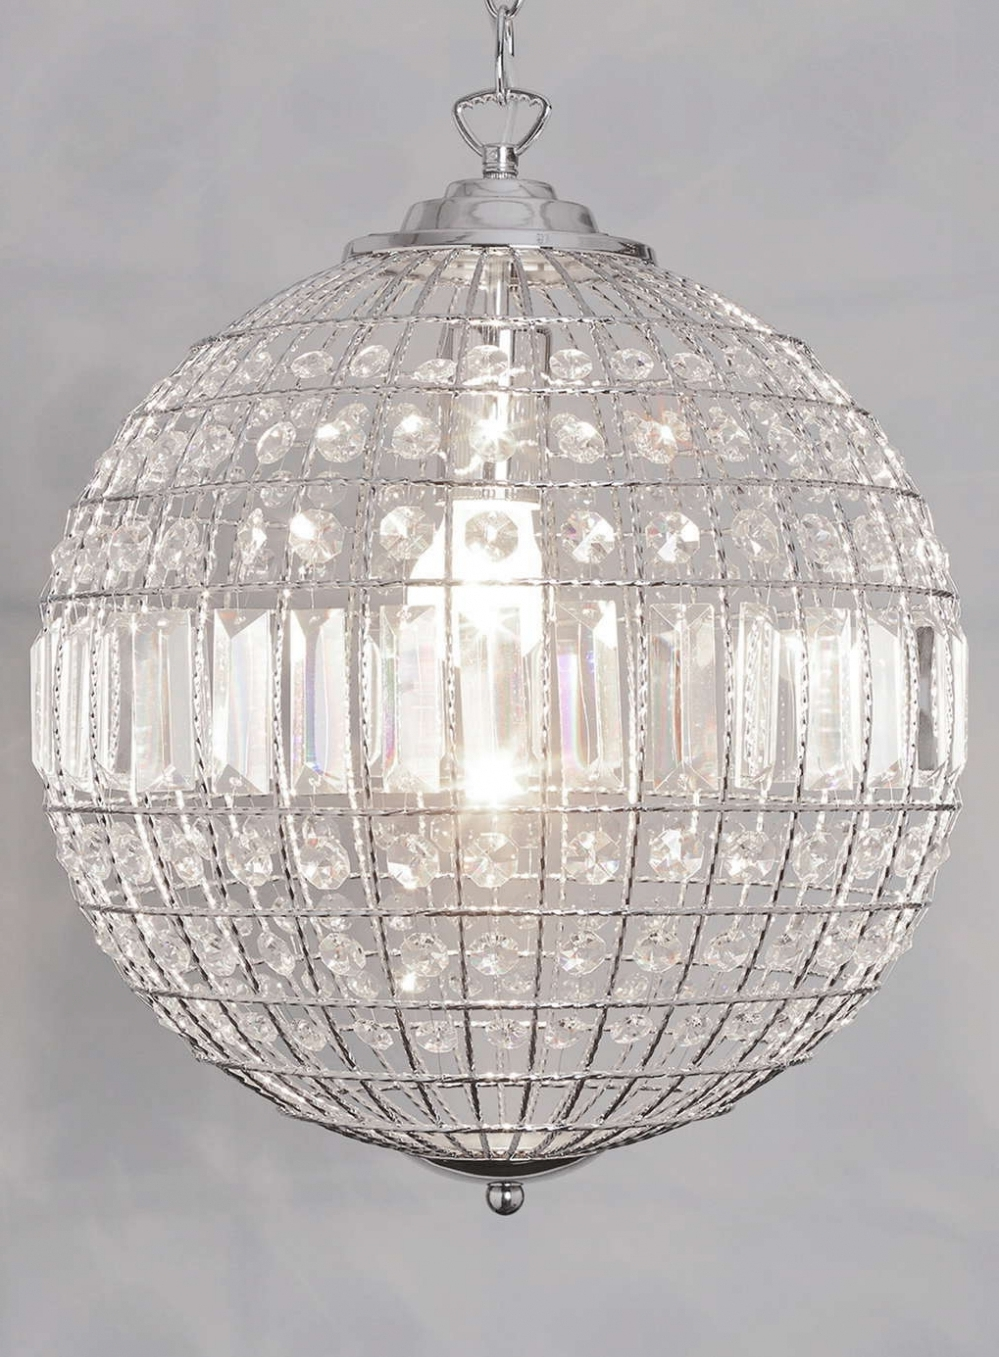 Crystal Globe Chandelier With Most Popular Home Decor: Chandeliers Design : Wonderful Crystal Globe Chandelier (View 11 of 20)